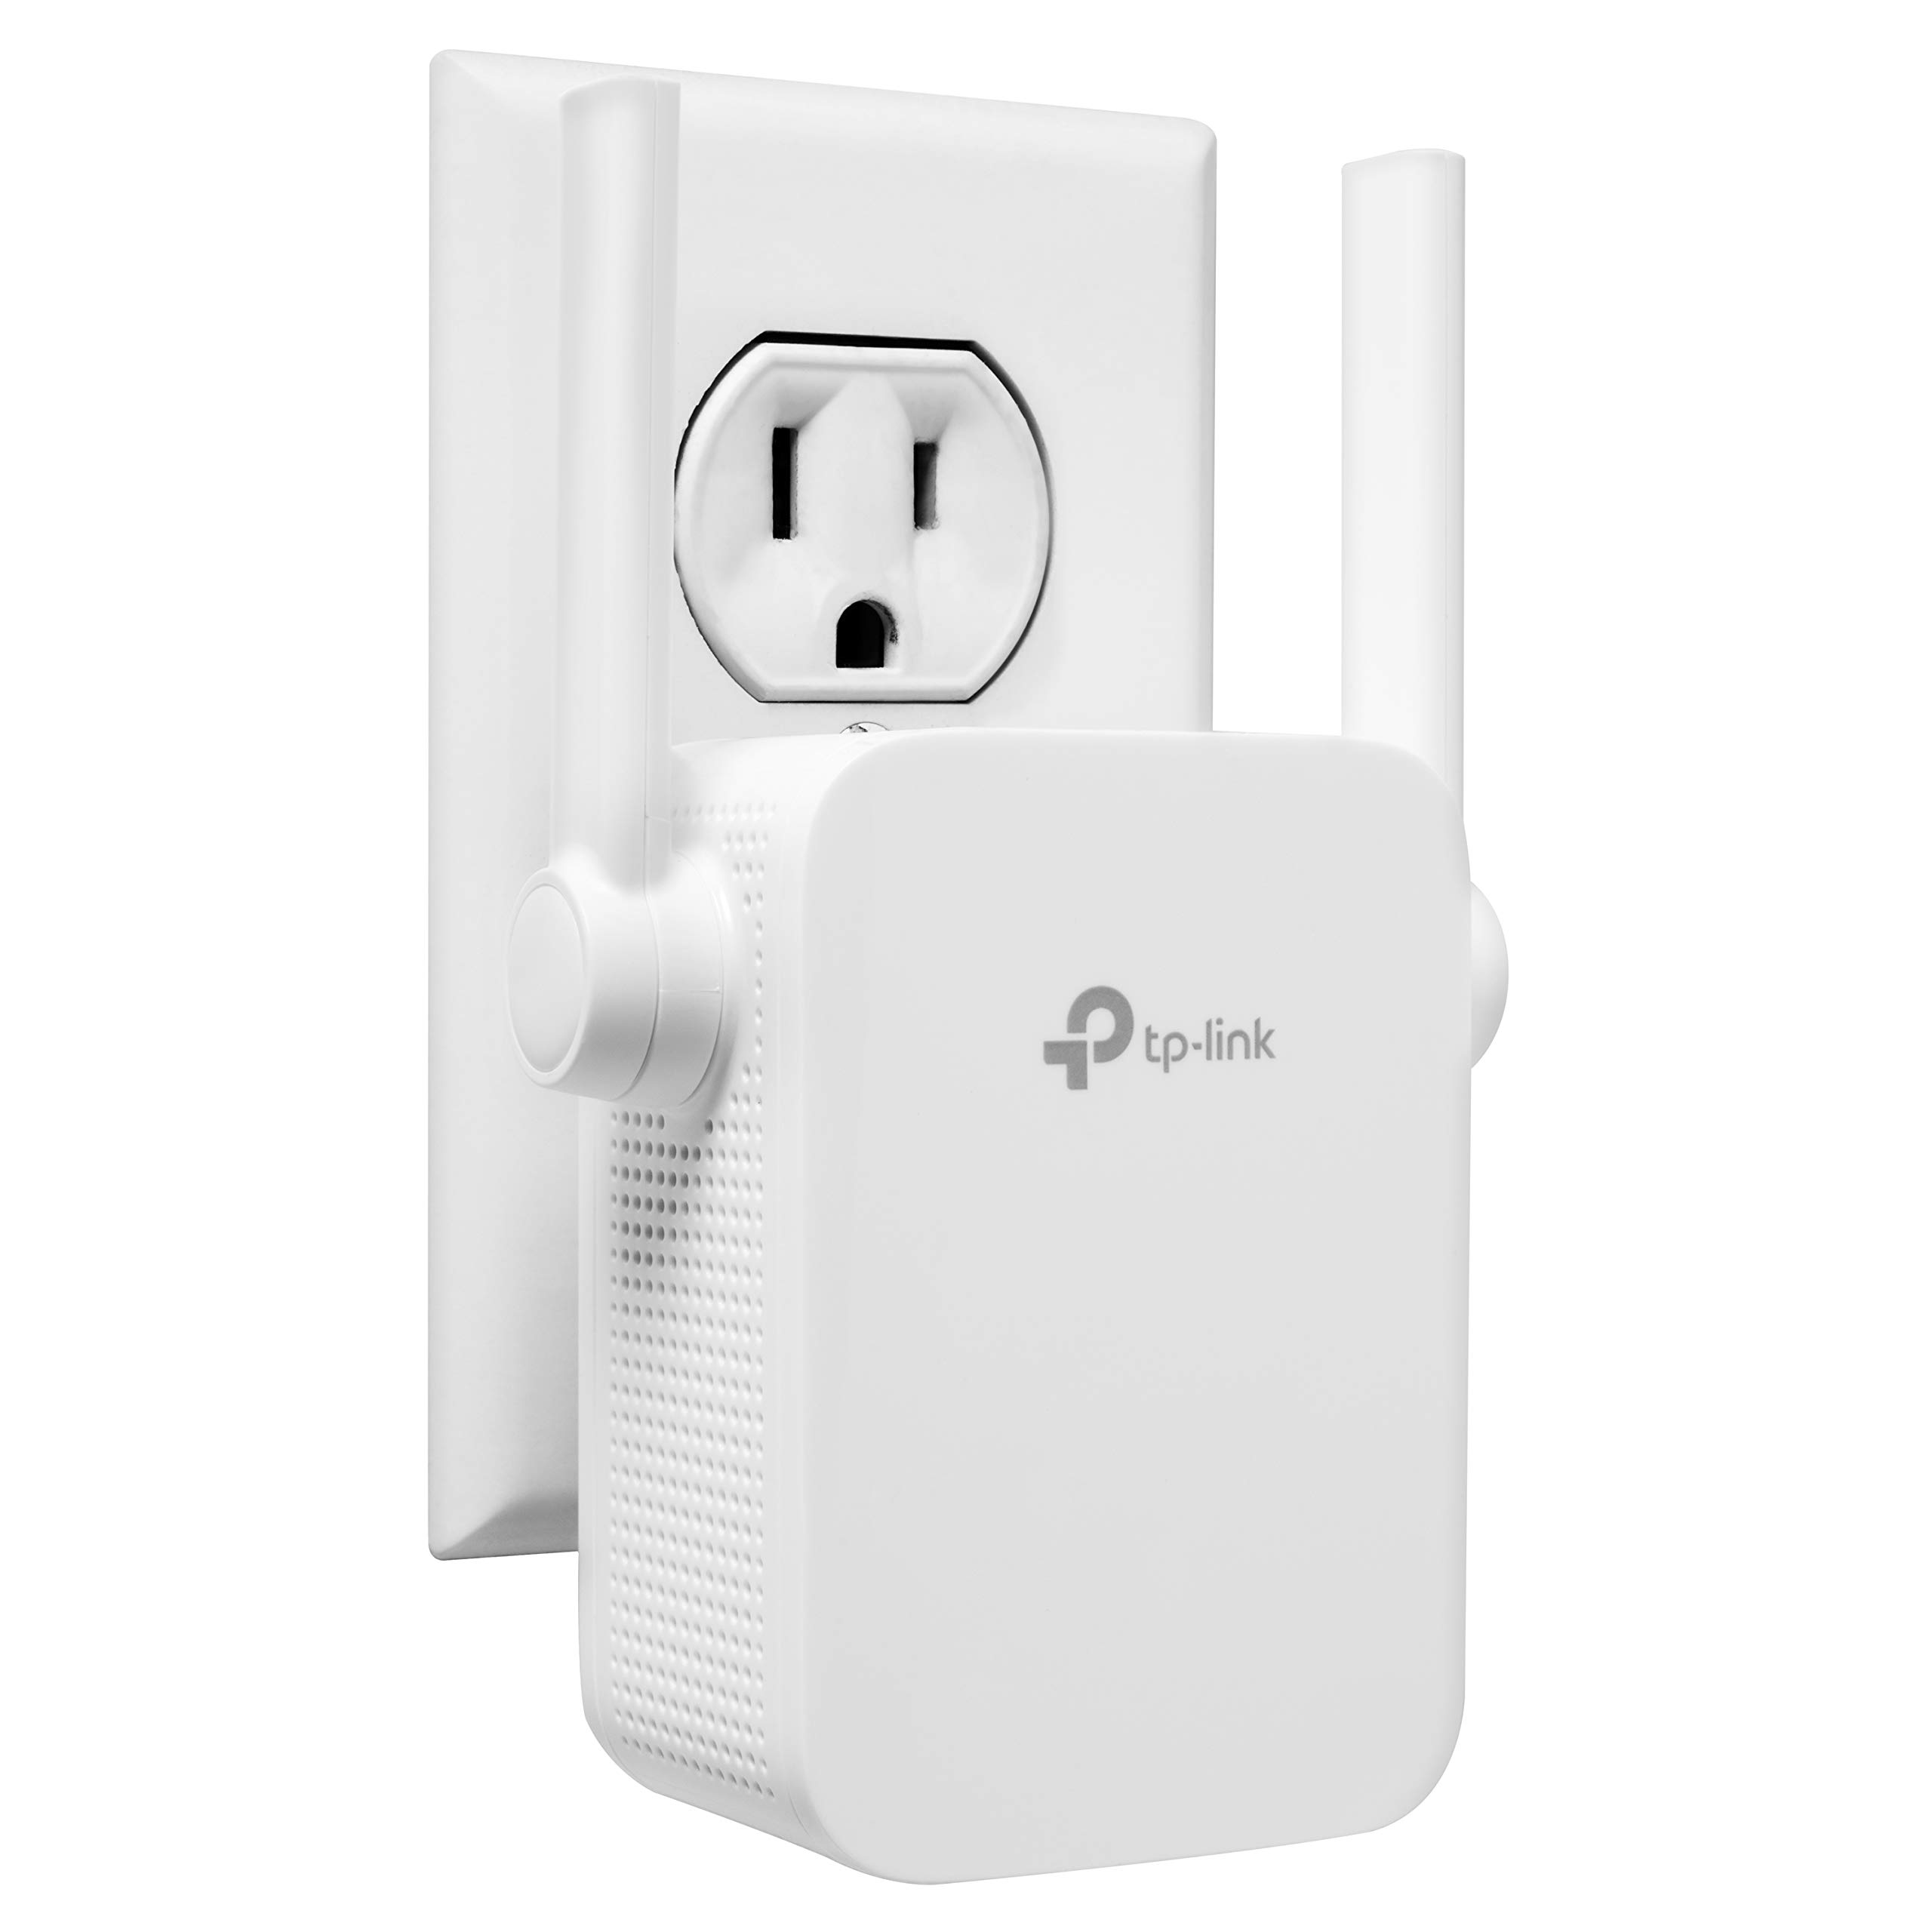 TP-Link TL-WA855RE Wi-Fi Range Extender (White) product image